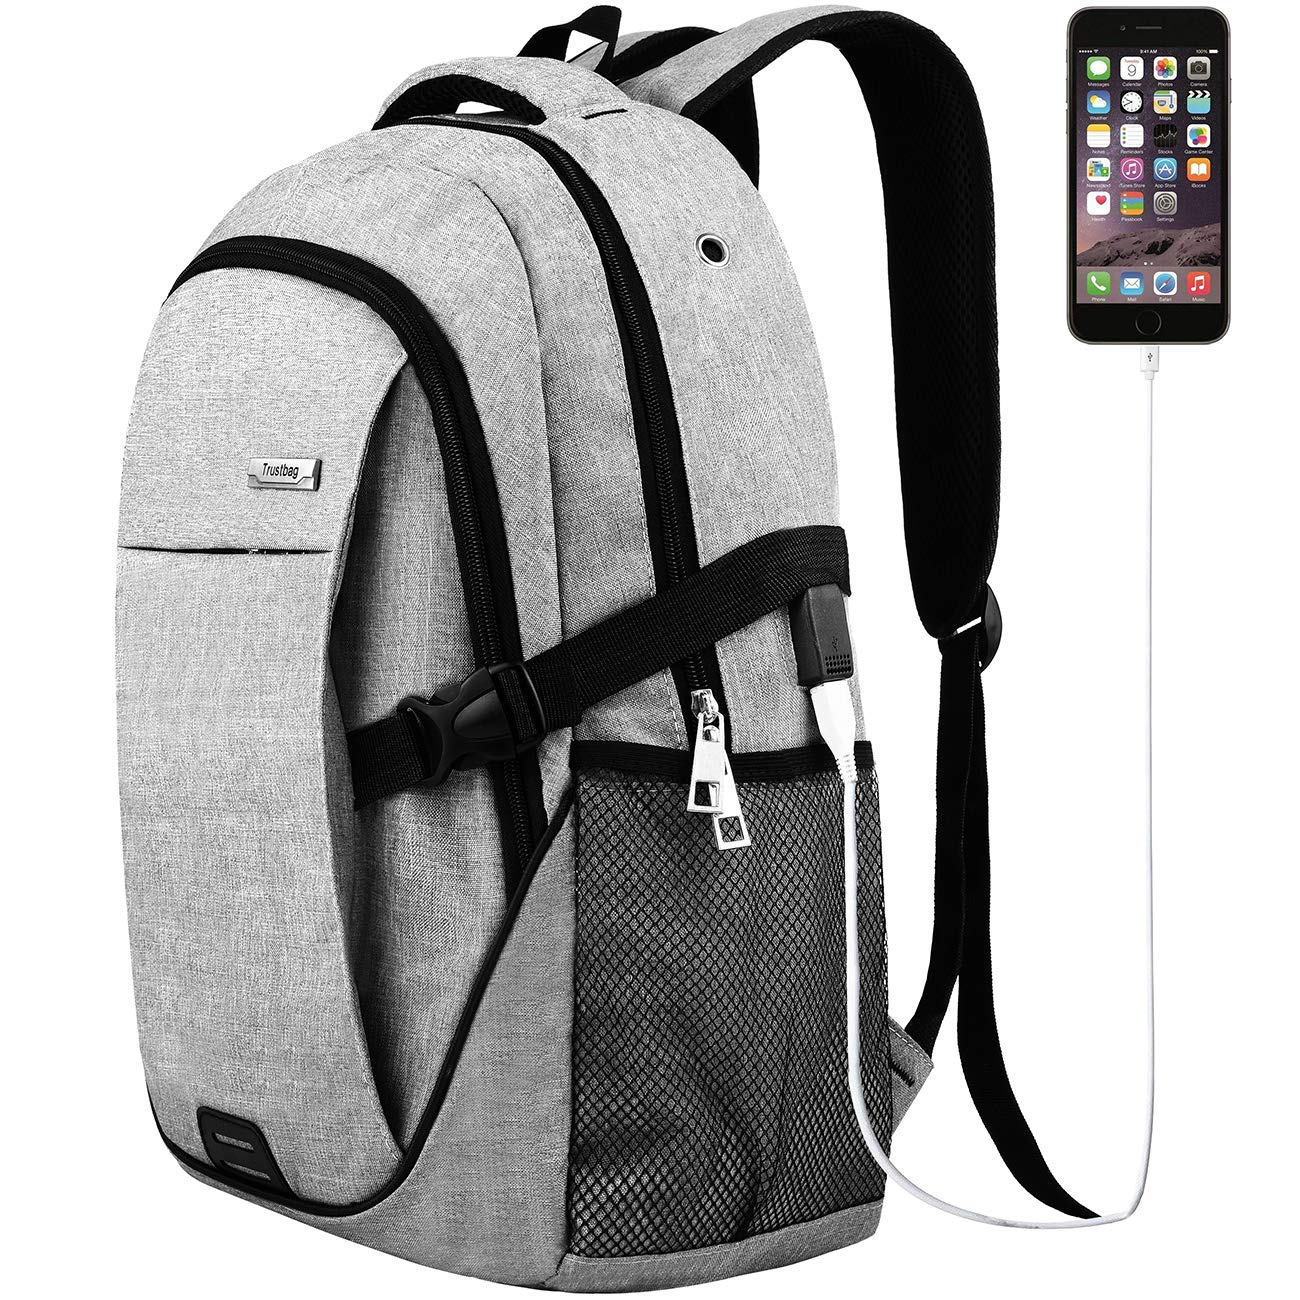 Trustbag TR013008 Laptop Backpack for Men Women, Grey